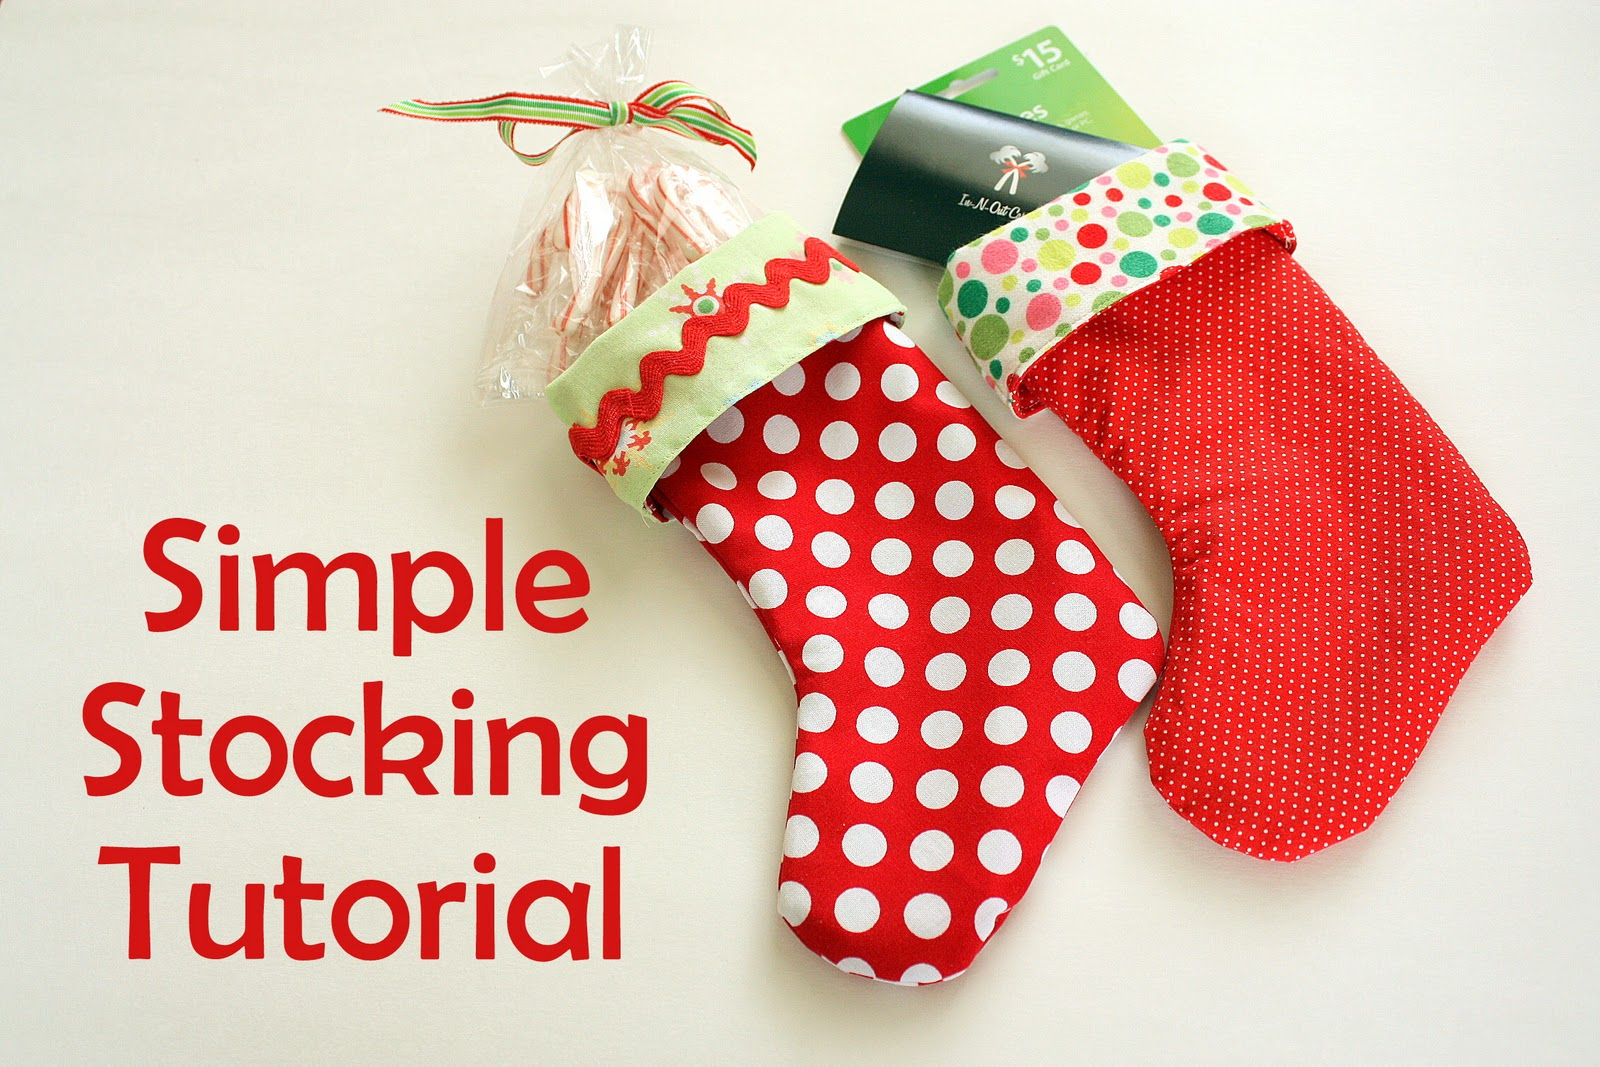 If you're in desperate need of updating your Christmas stockings, you've come to the right place. You could buy some brand new ones, or try out some creative DIY's—we've got options for both.